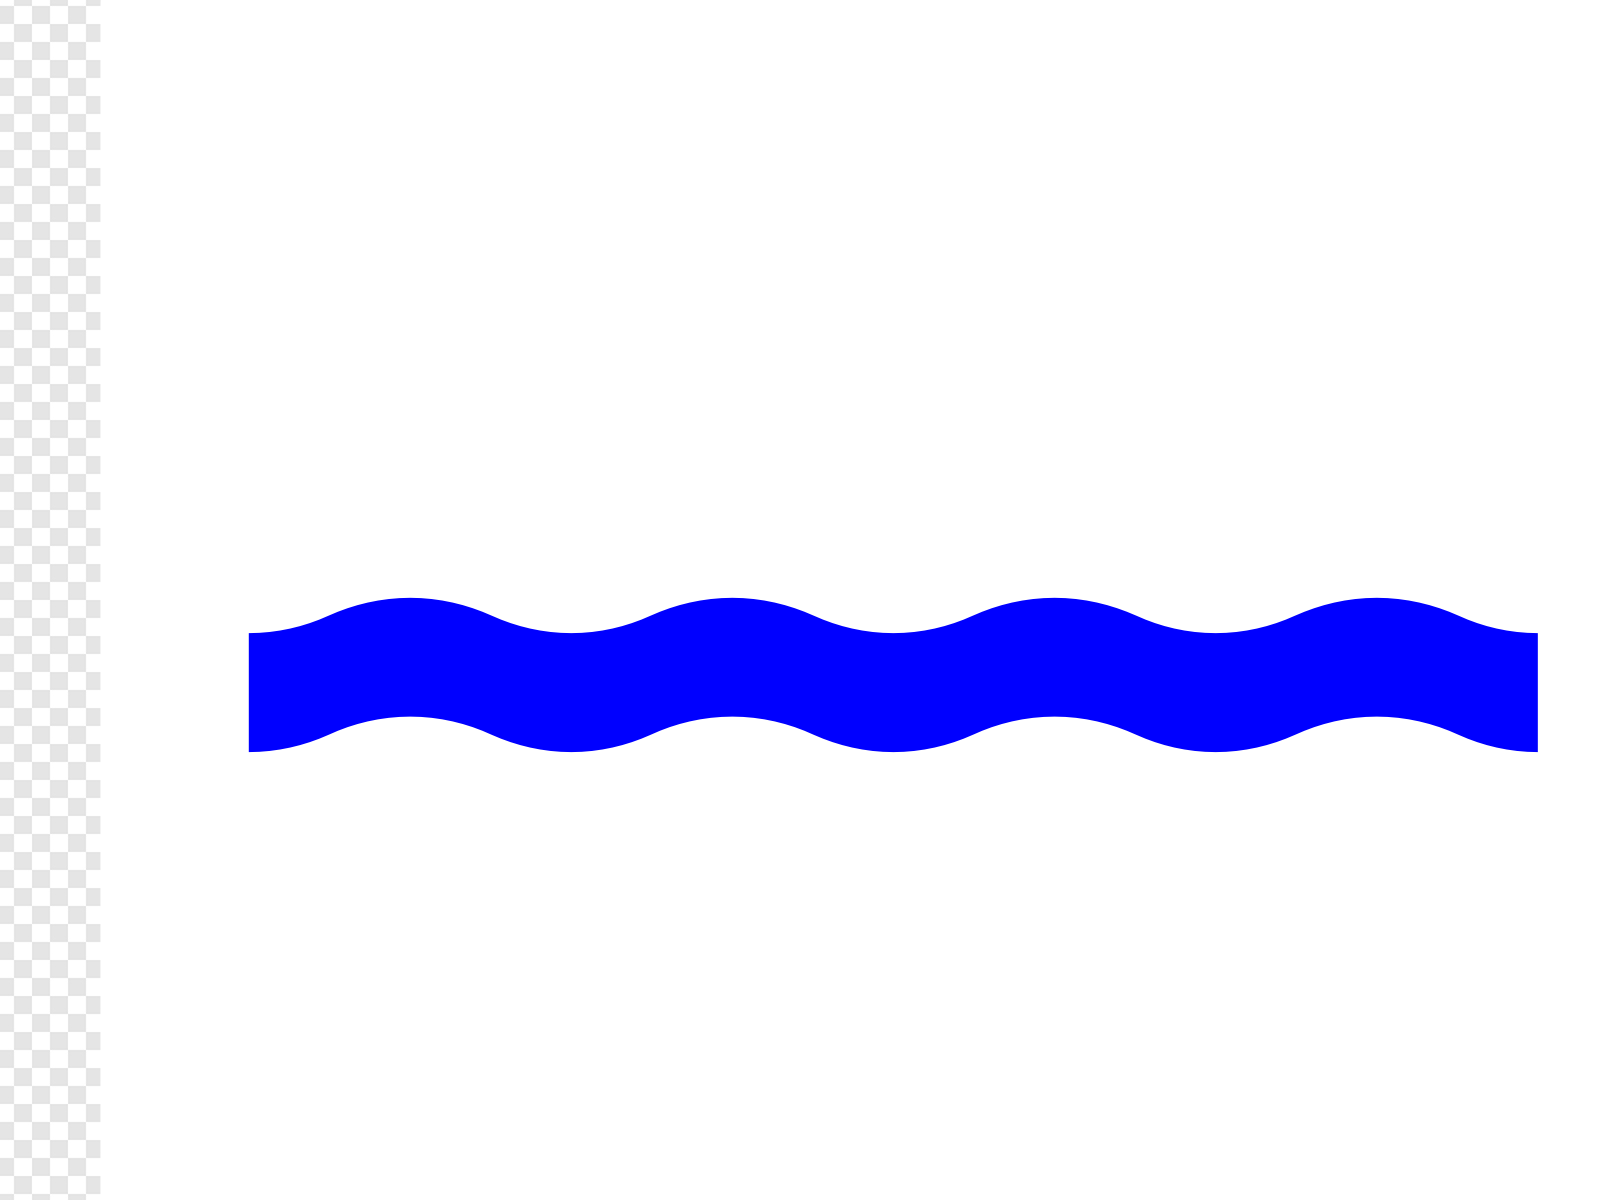 Wave blue clip art. Waves clipart waterline